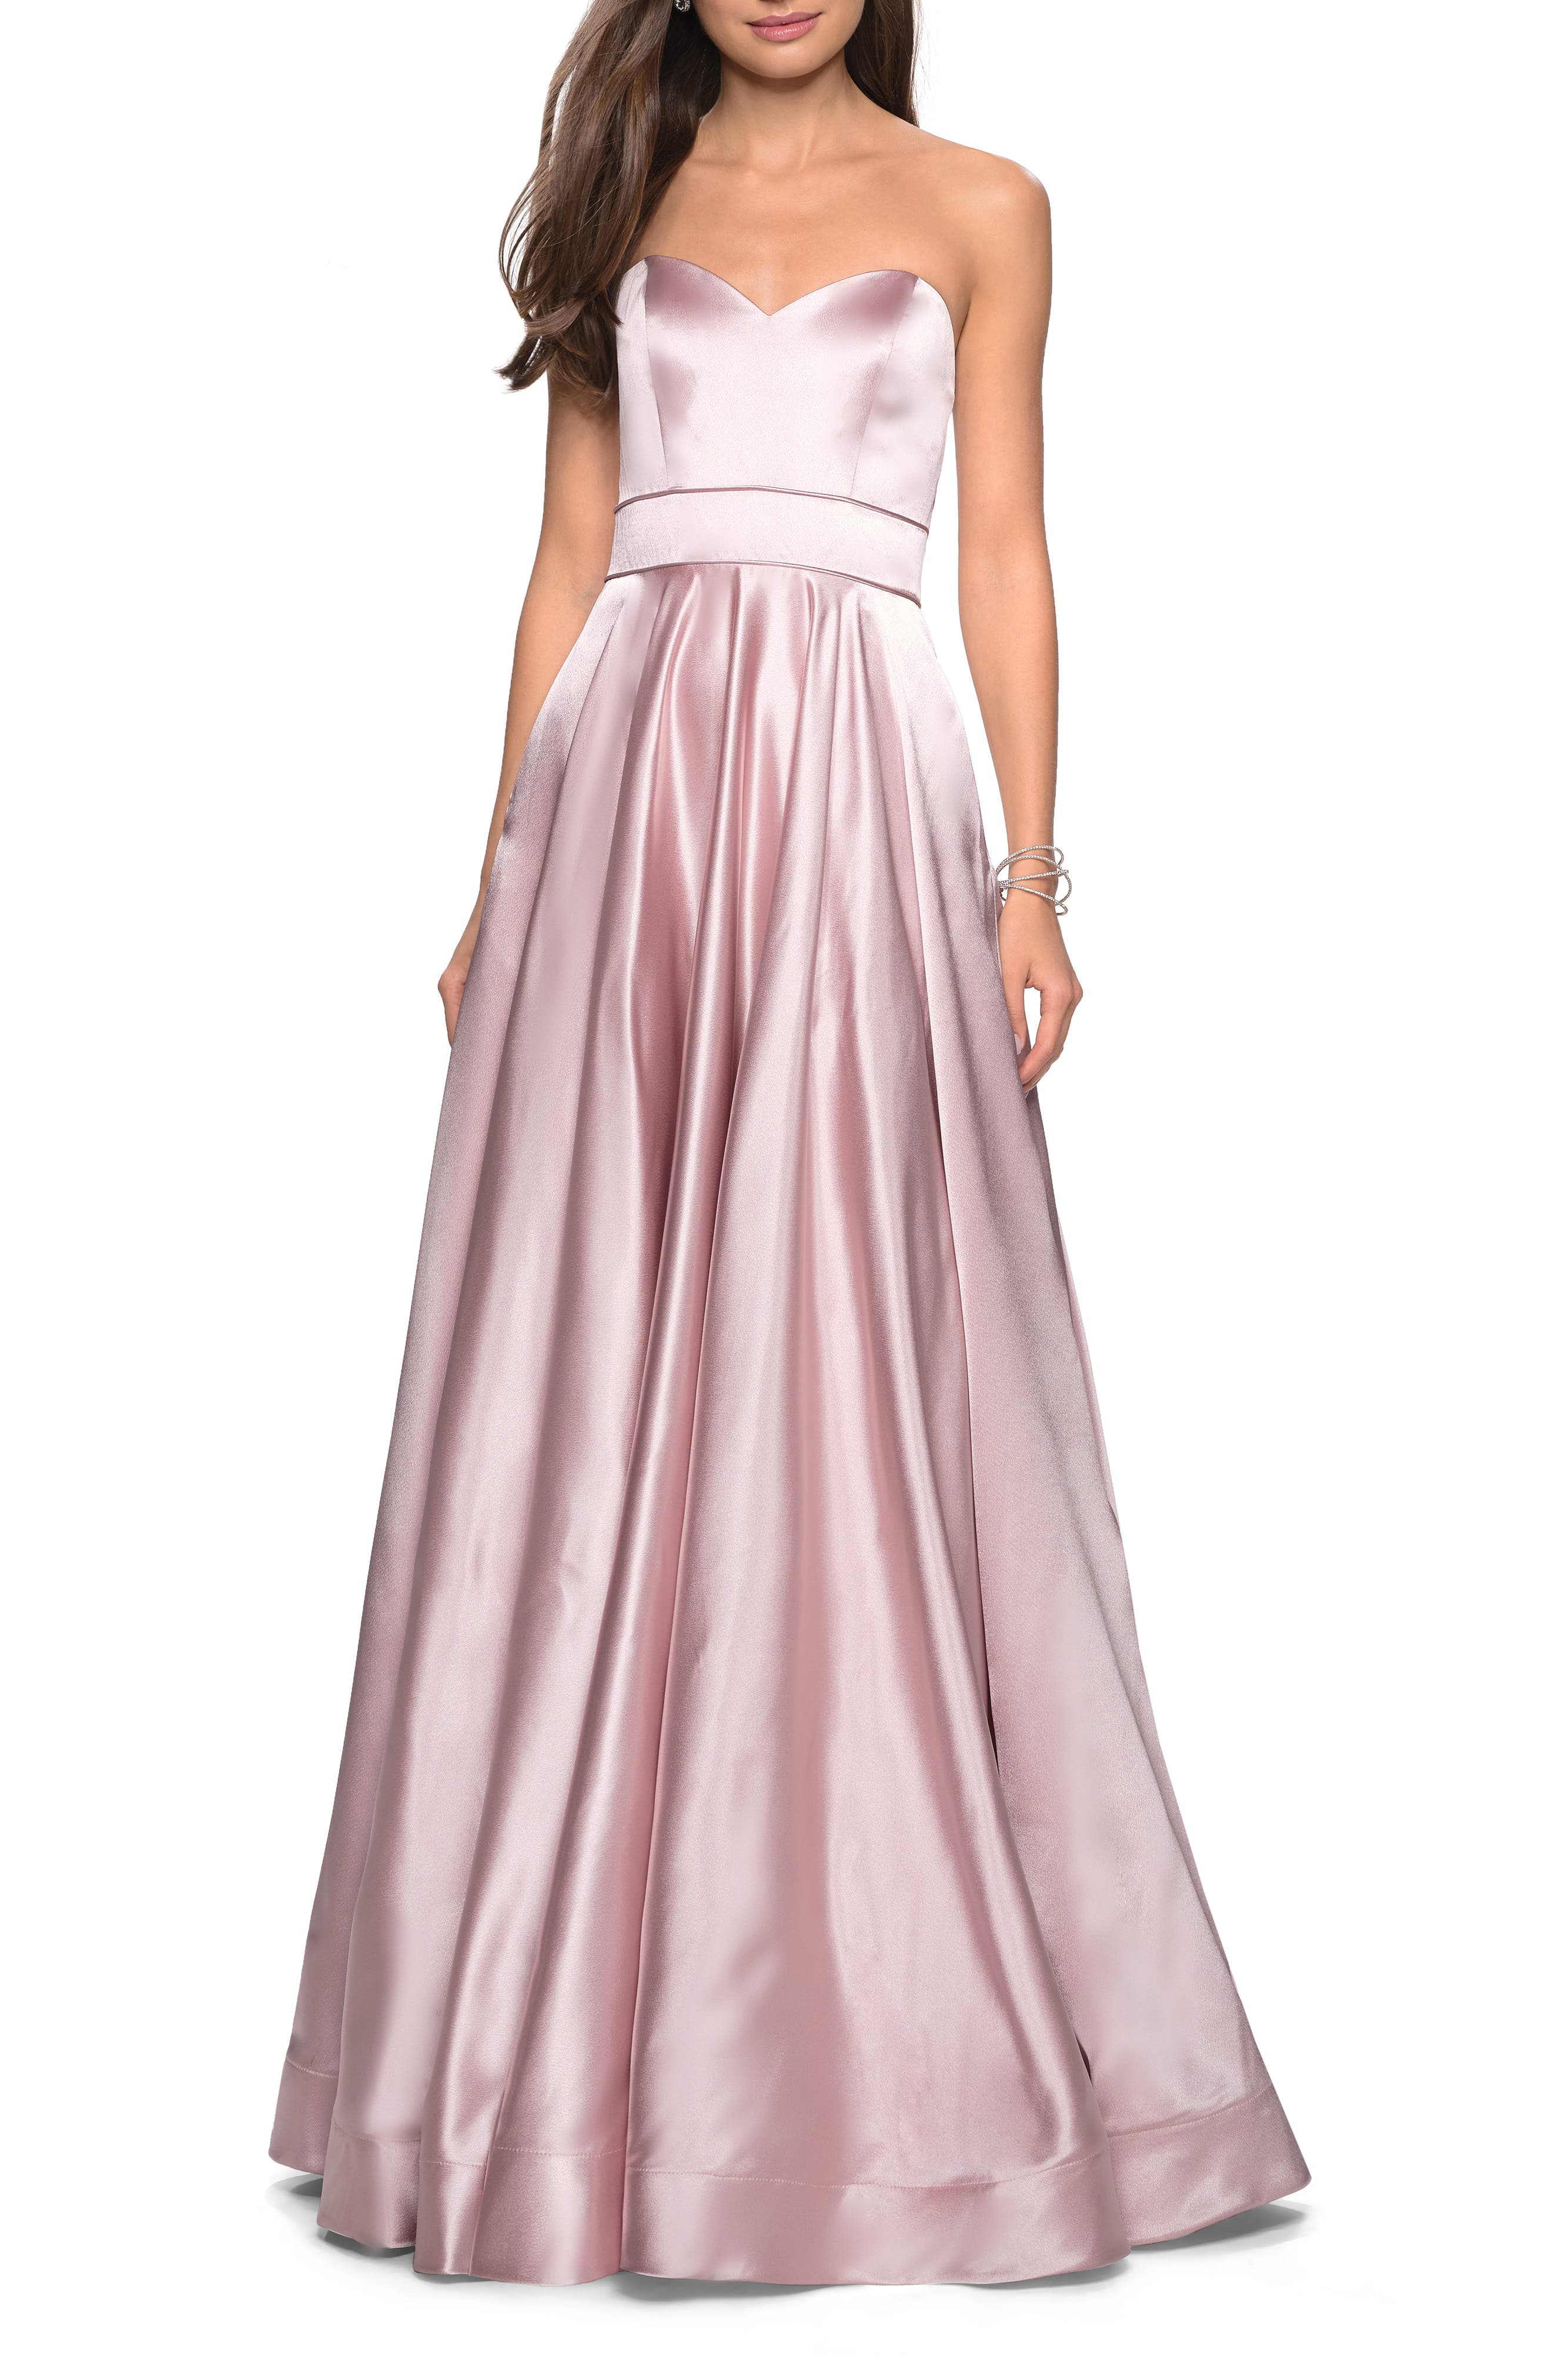 La Femme Strapless Satin Evening Dress, Pink